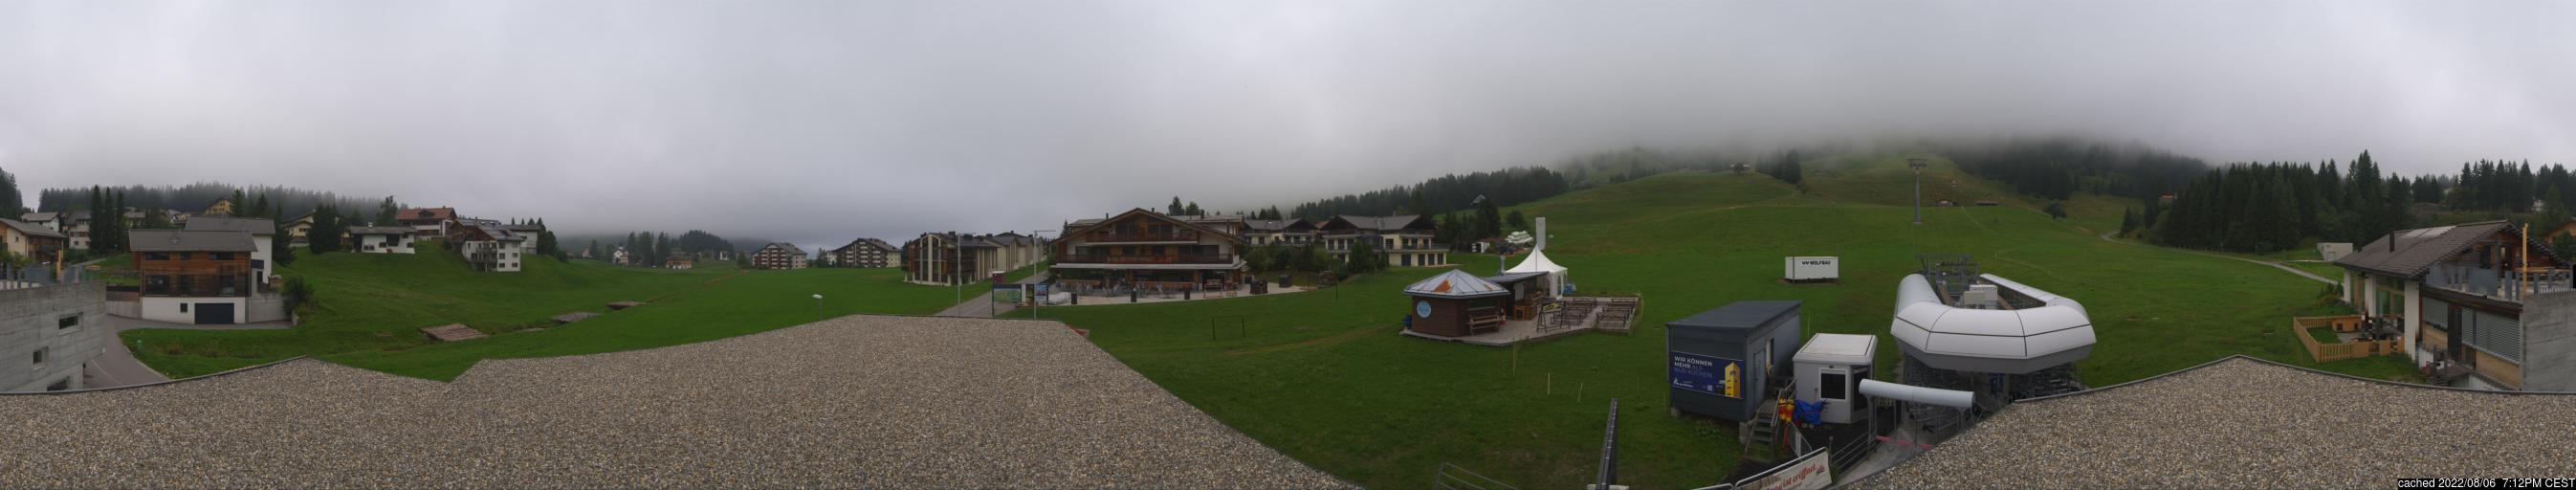 Live webcam per Lenzerheide se disponibile